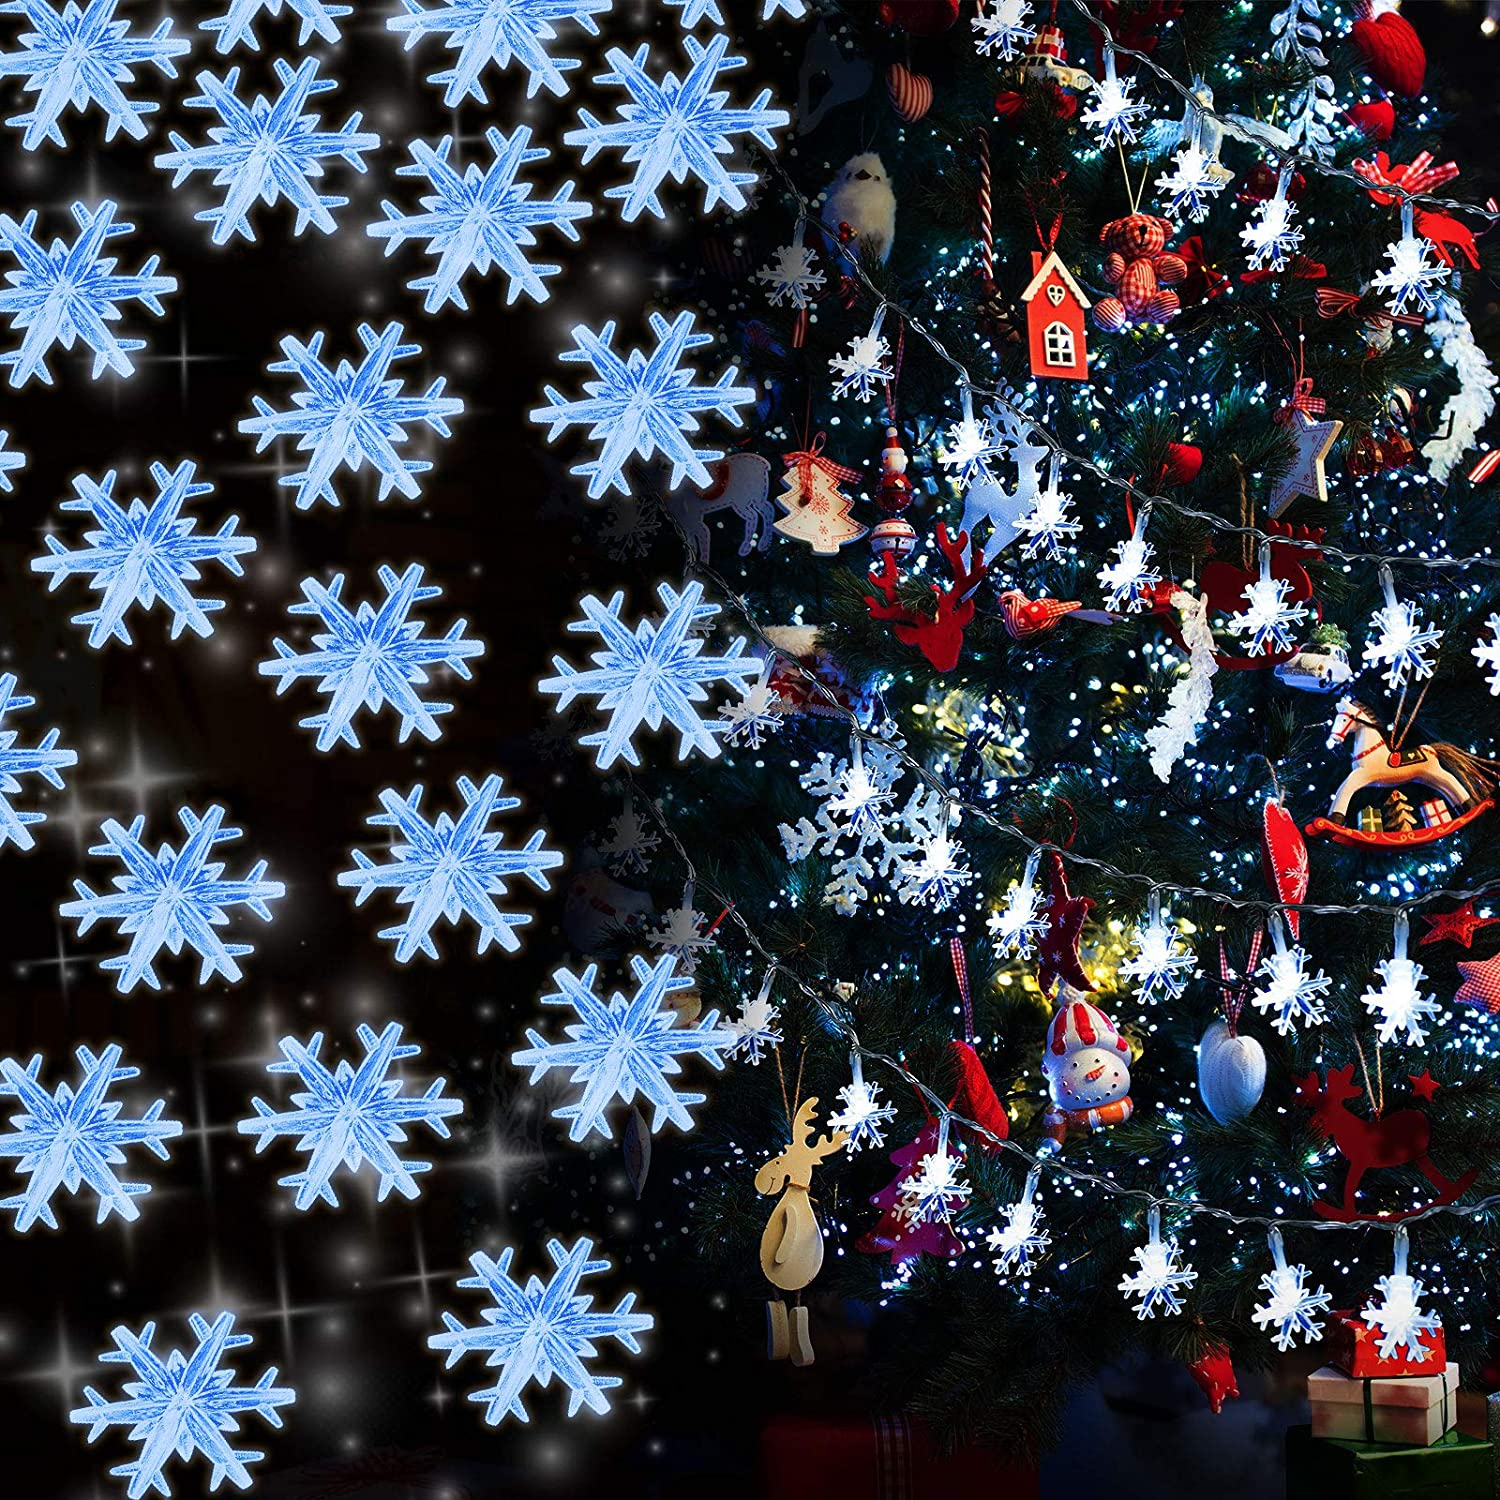 8 Modes Christmas String Lights 10 Feet 30 LED Christmas Snowflake Fairy Lights Battery Operated Waterproof Lights for Home Garden Patio Bedroom Christmas Outdoor Indoor Decorations (Blue)